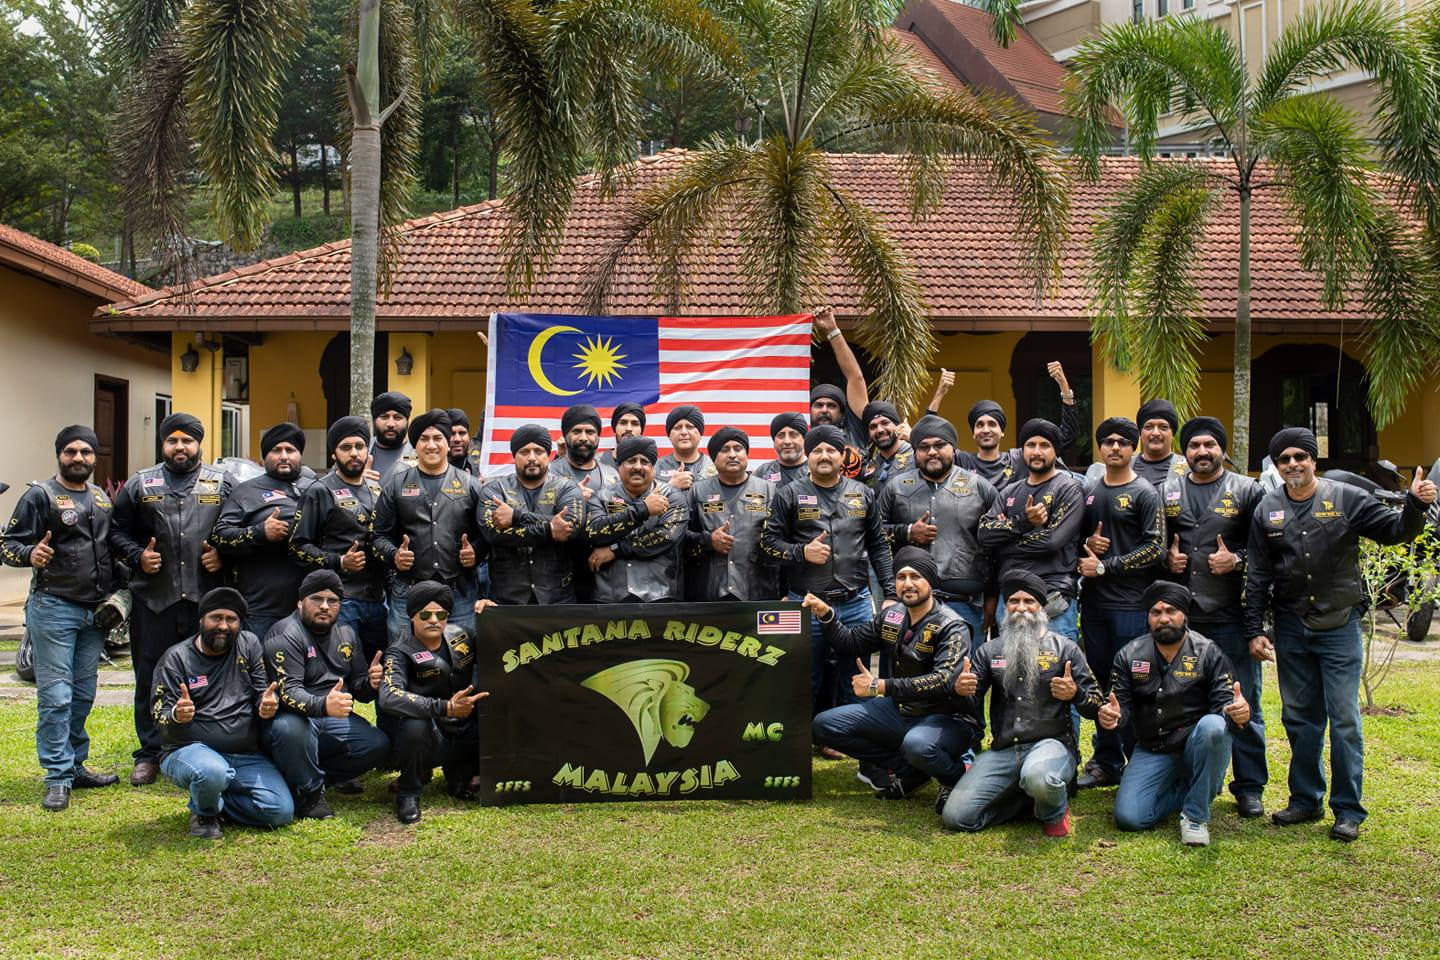 Members of Santana Riderz Malaysia Club. Photo courtesy: Santana Riderz Malaysia Club